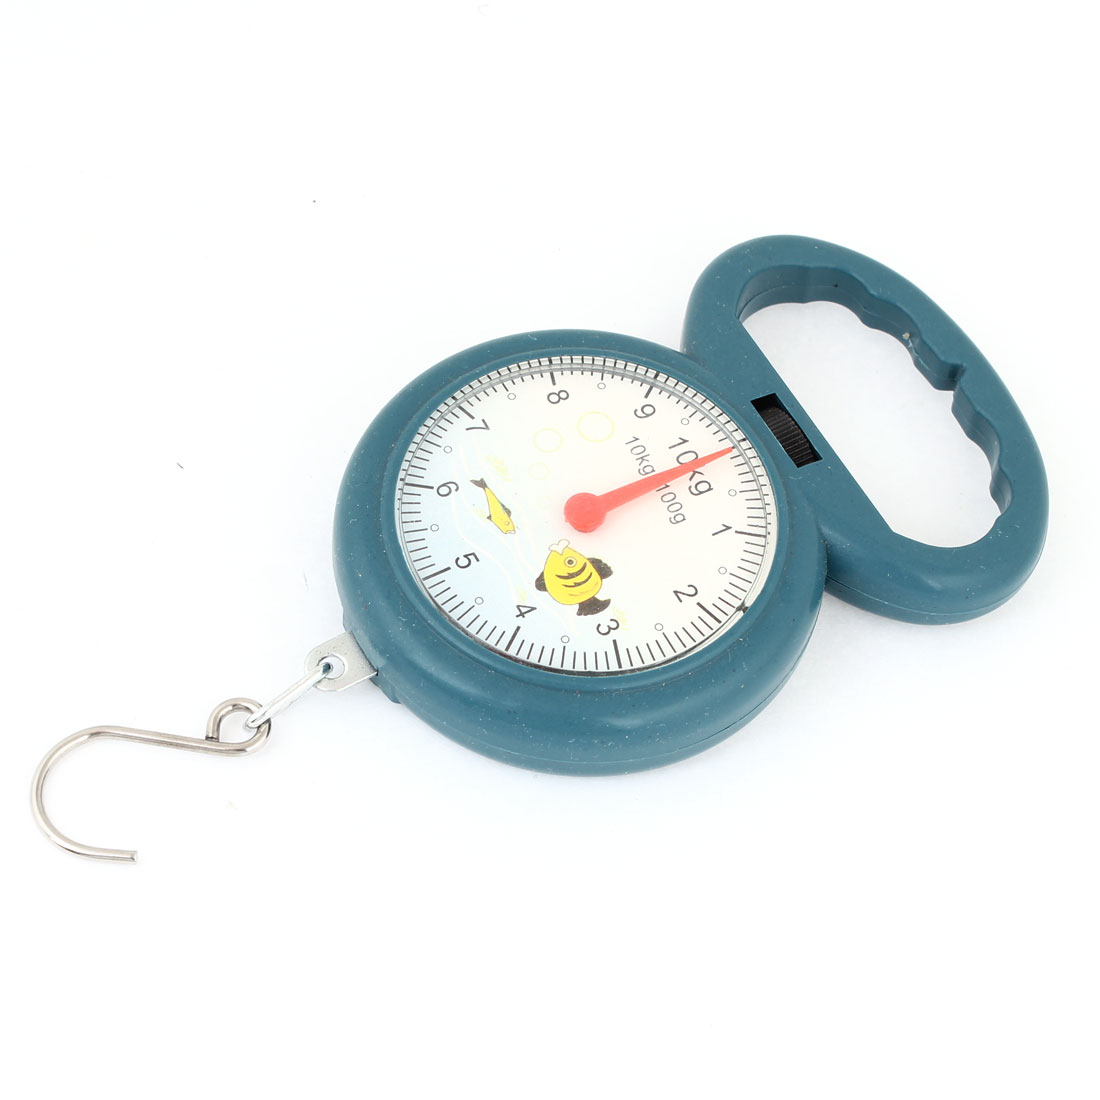 10kg x 100g/22lb x 0.2lb Metal Hook Portable Analog Hanging Scale Steel Blue